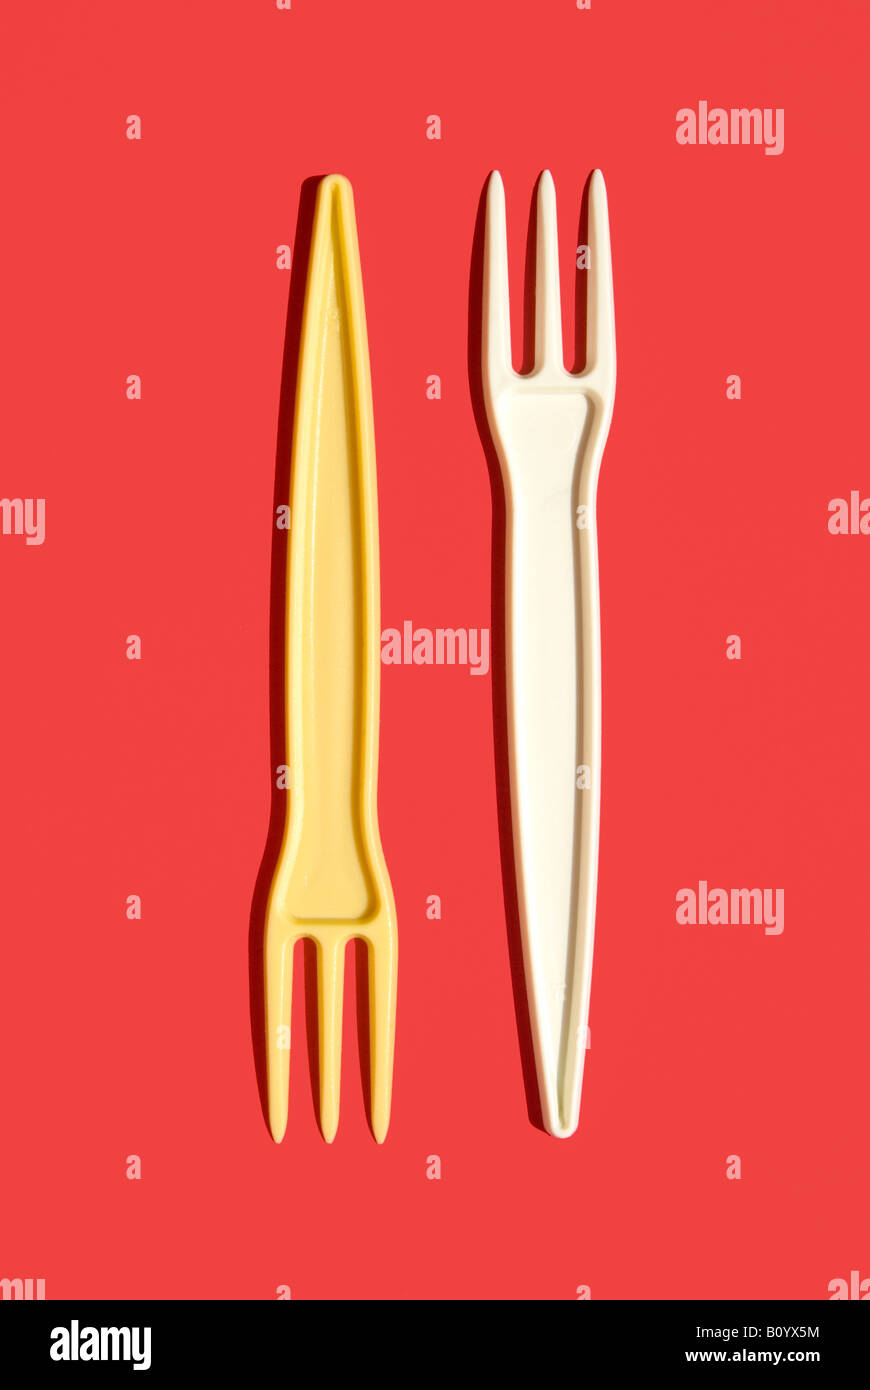 Plastic forks, elevated view - Stock Image